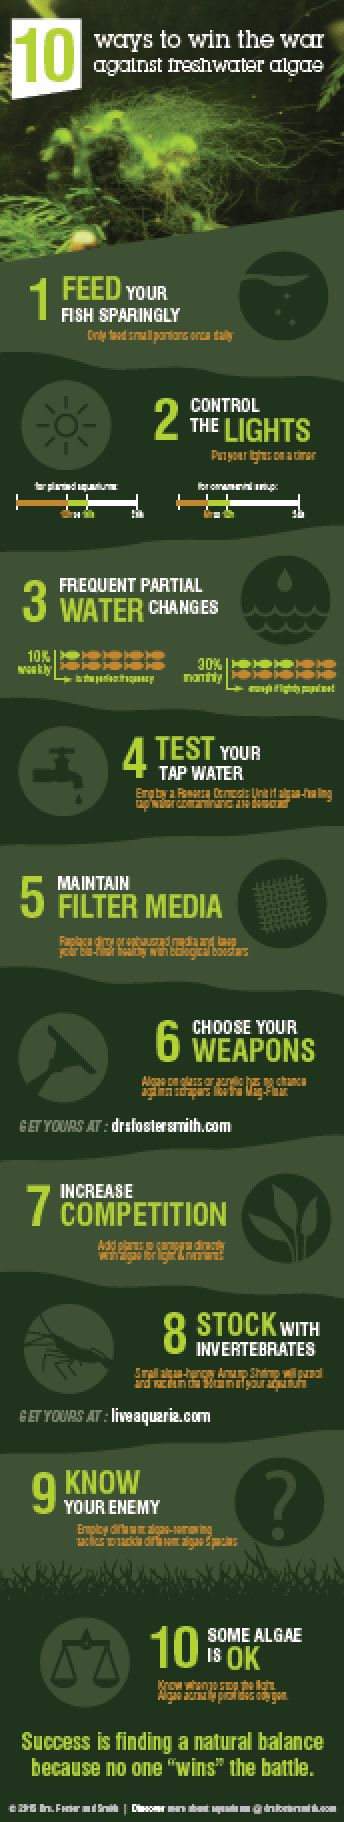 10 ways to control your fish tank against freshwater algae - a resource from www.tropicalfishcareguides.com